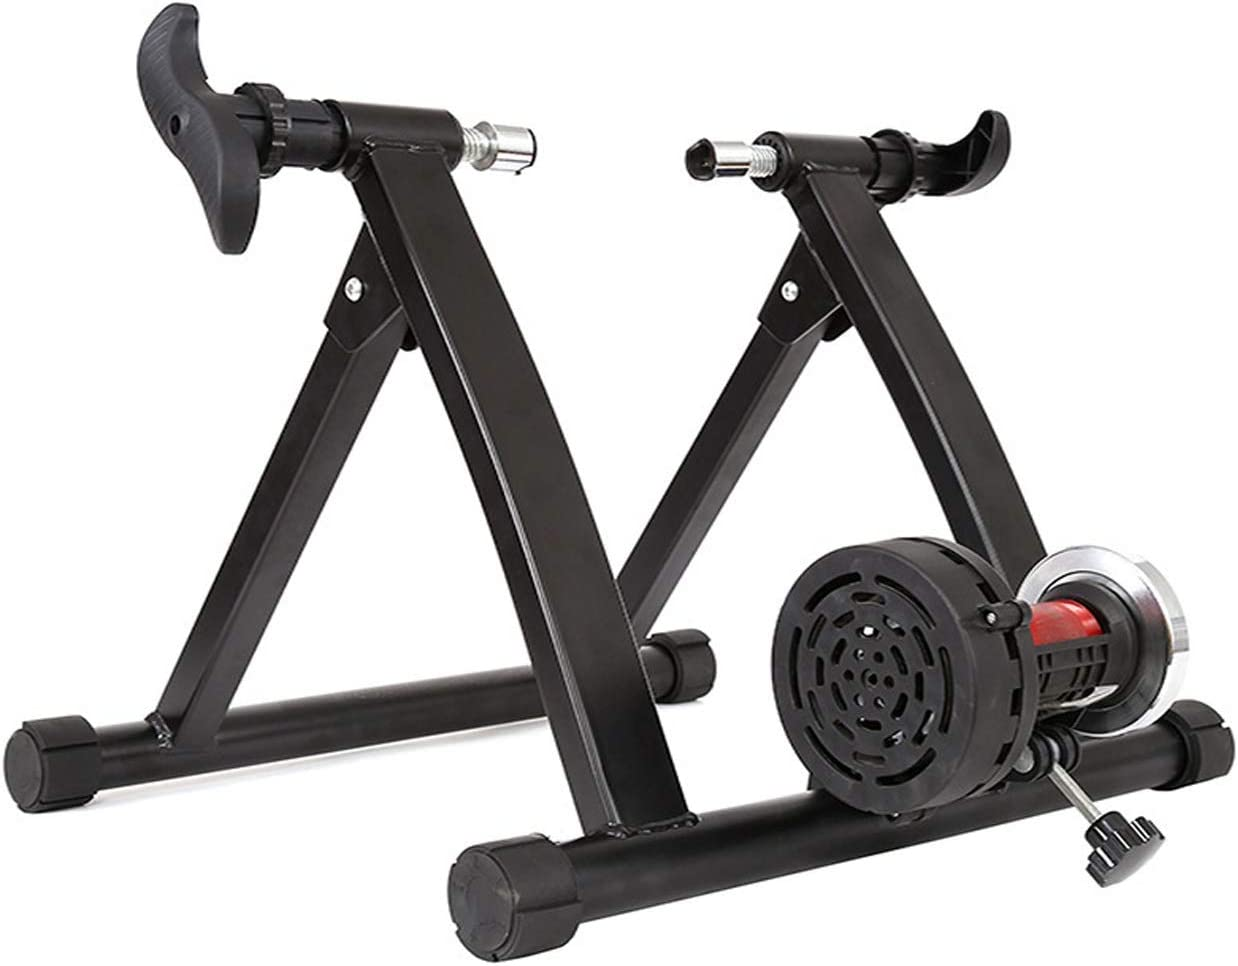 DSWHM Bike Trainer Stand National online shopping products Stable Duty Sta